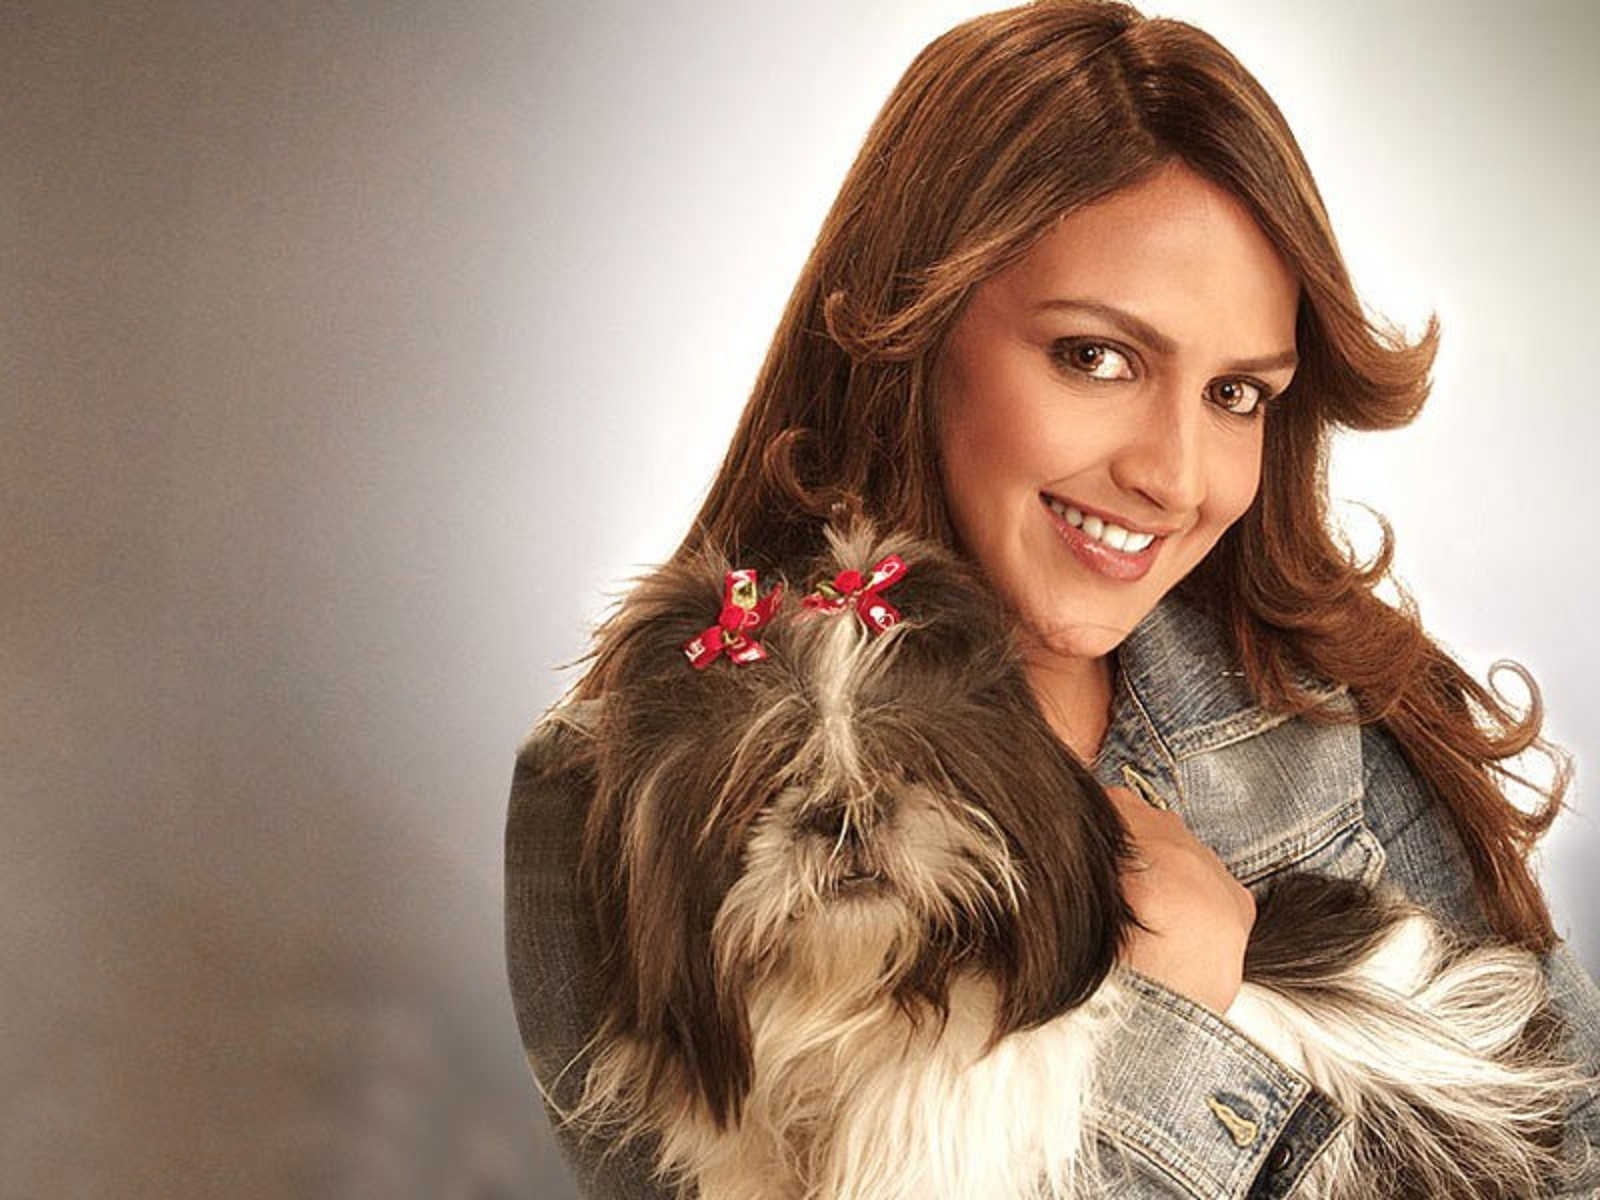 Cute Barbie Images For Wallpaper Beautiful Esha Deol Wallpaper Beautiful Desktop Hd